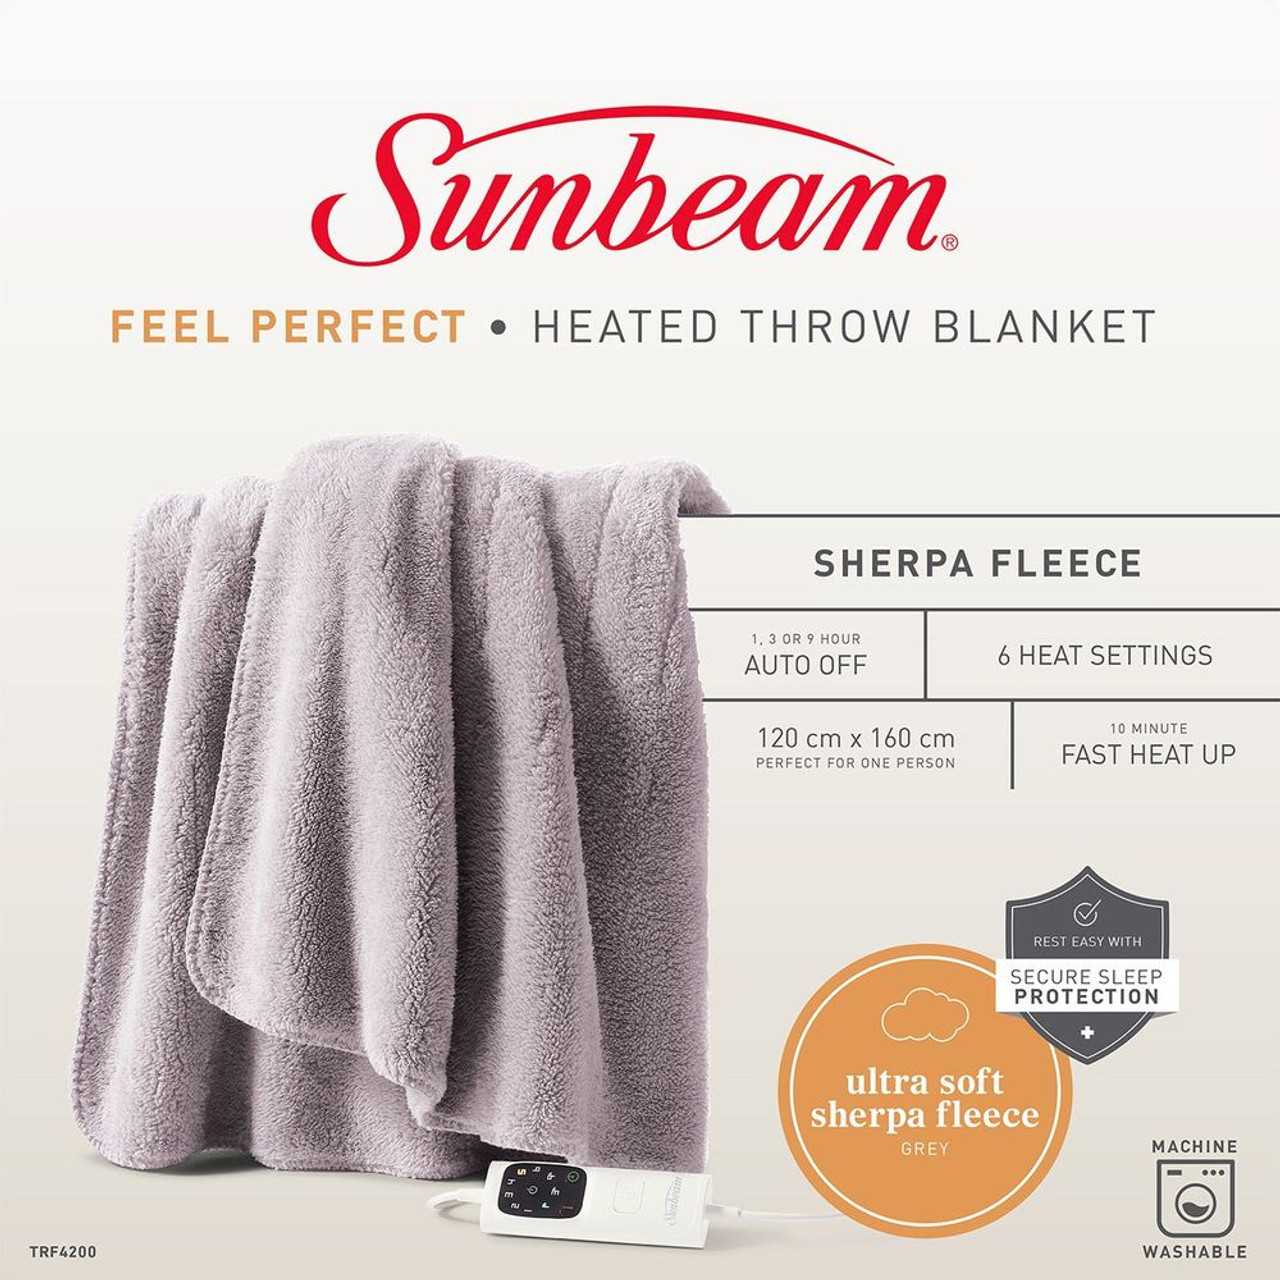 Sunbeam TRF4200 Sunbeam Feel Perfect Sherpa Fleece Heated Throw Blanket